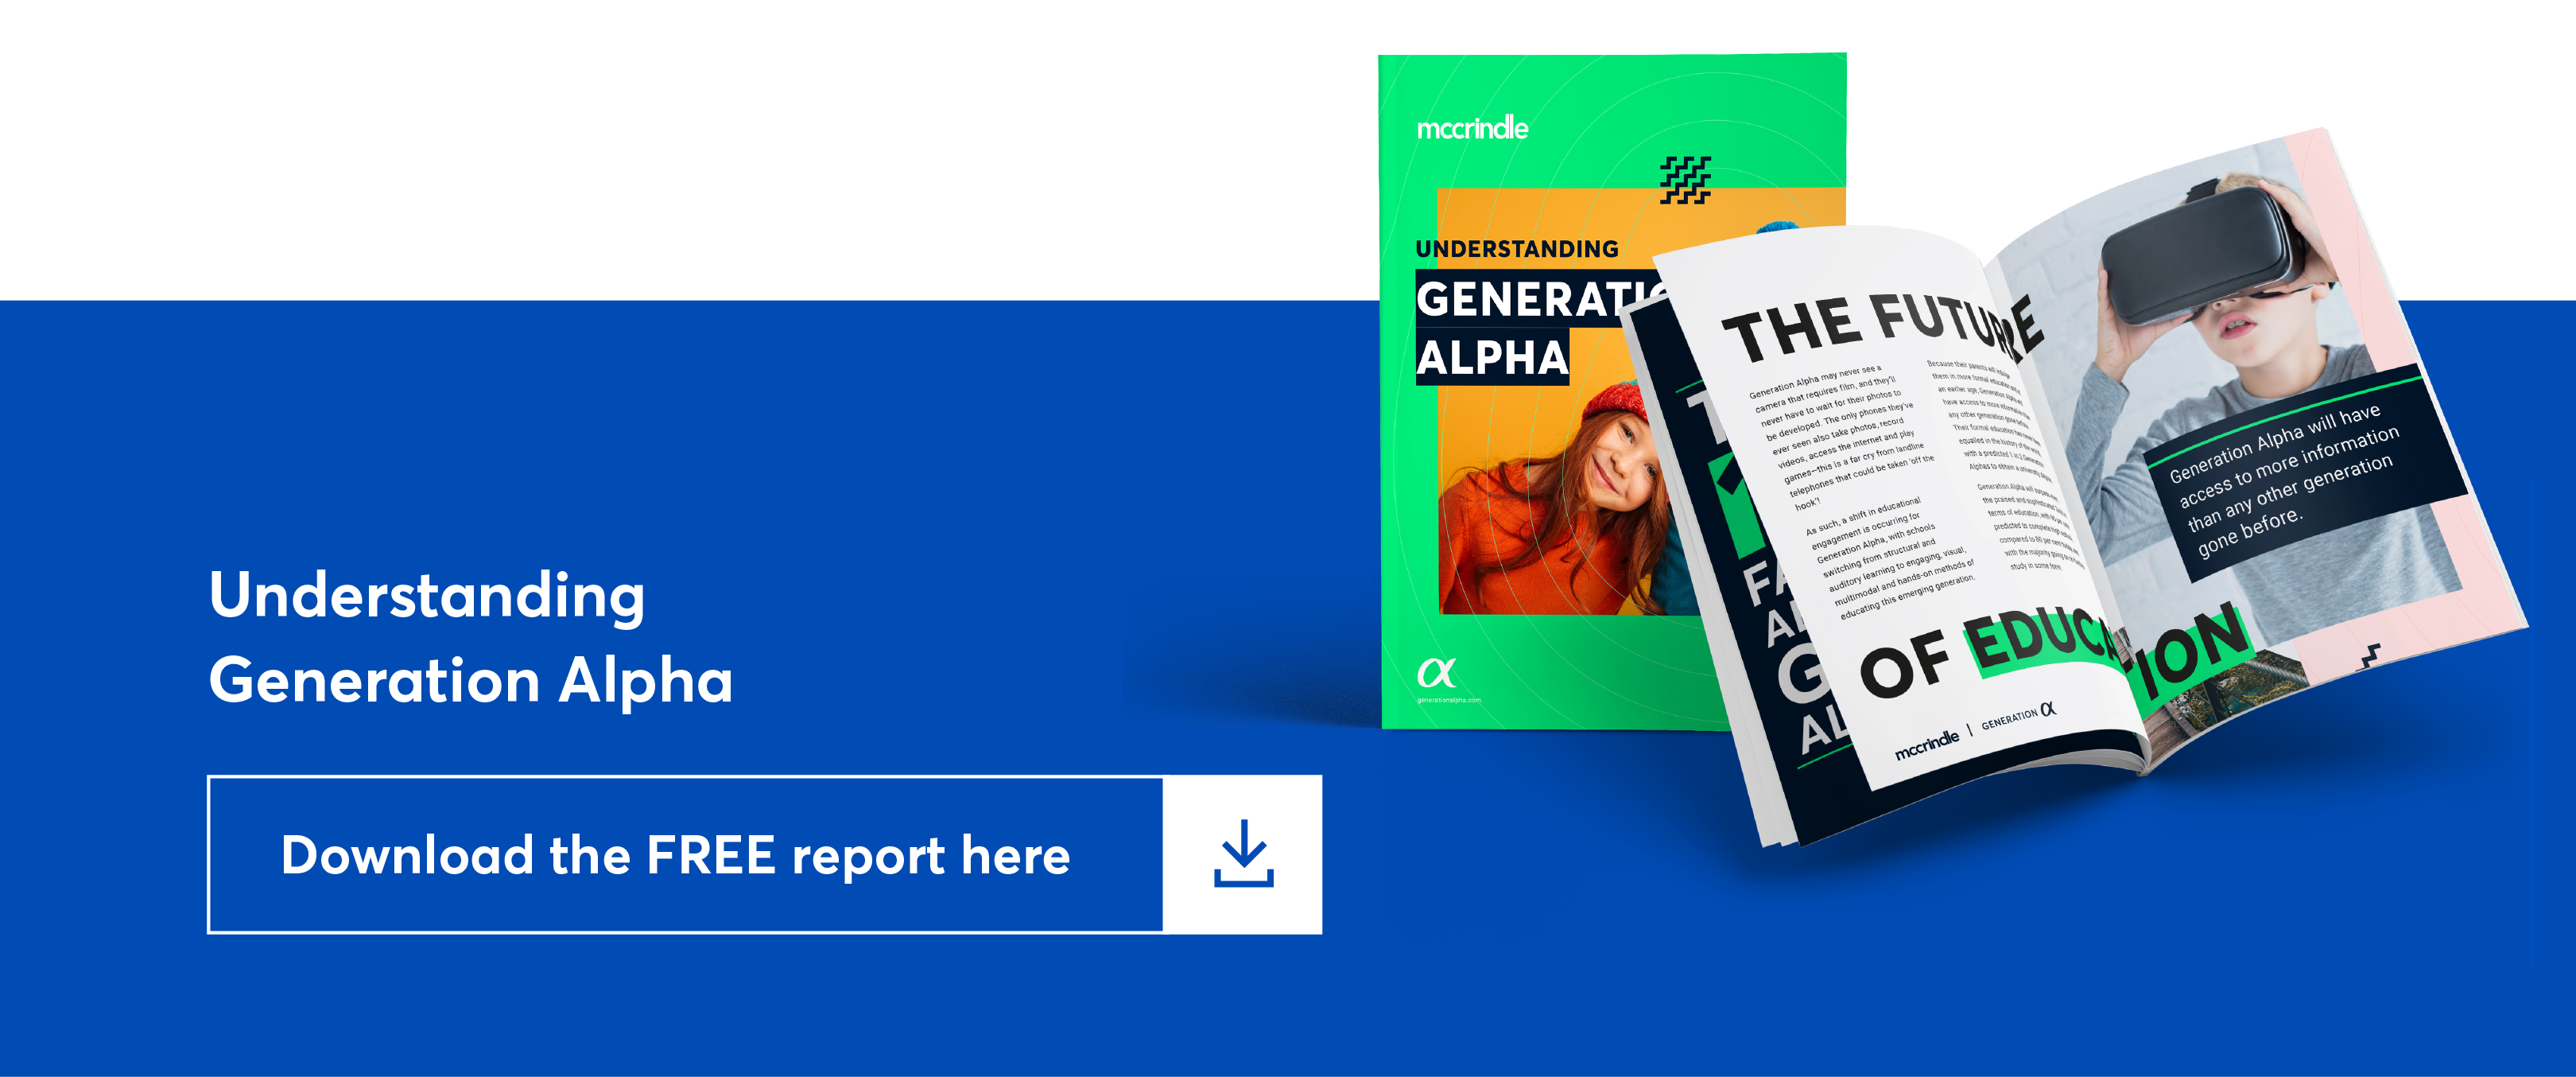 Understanding Generation Alpha report